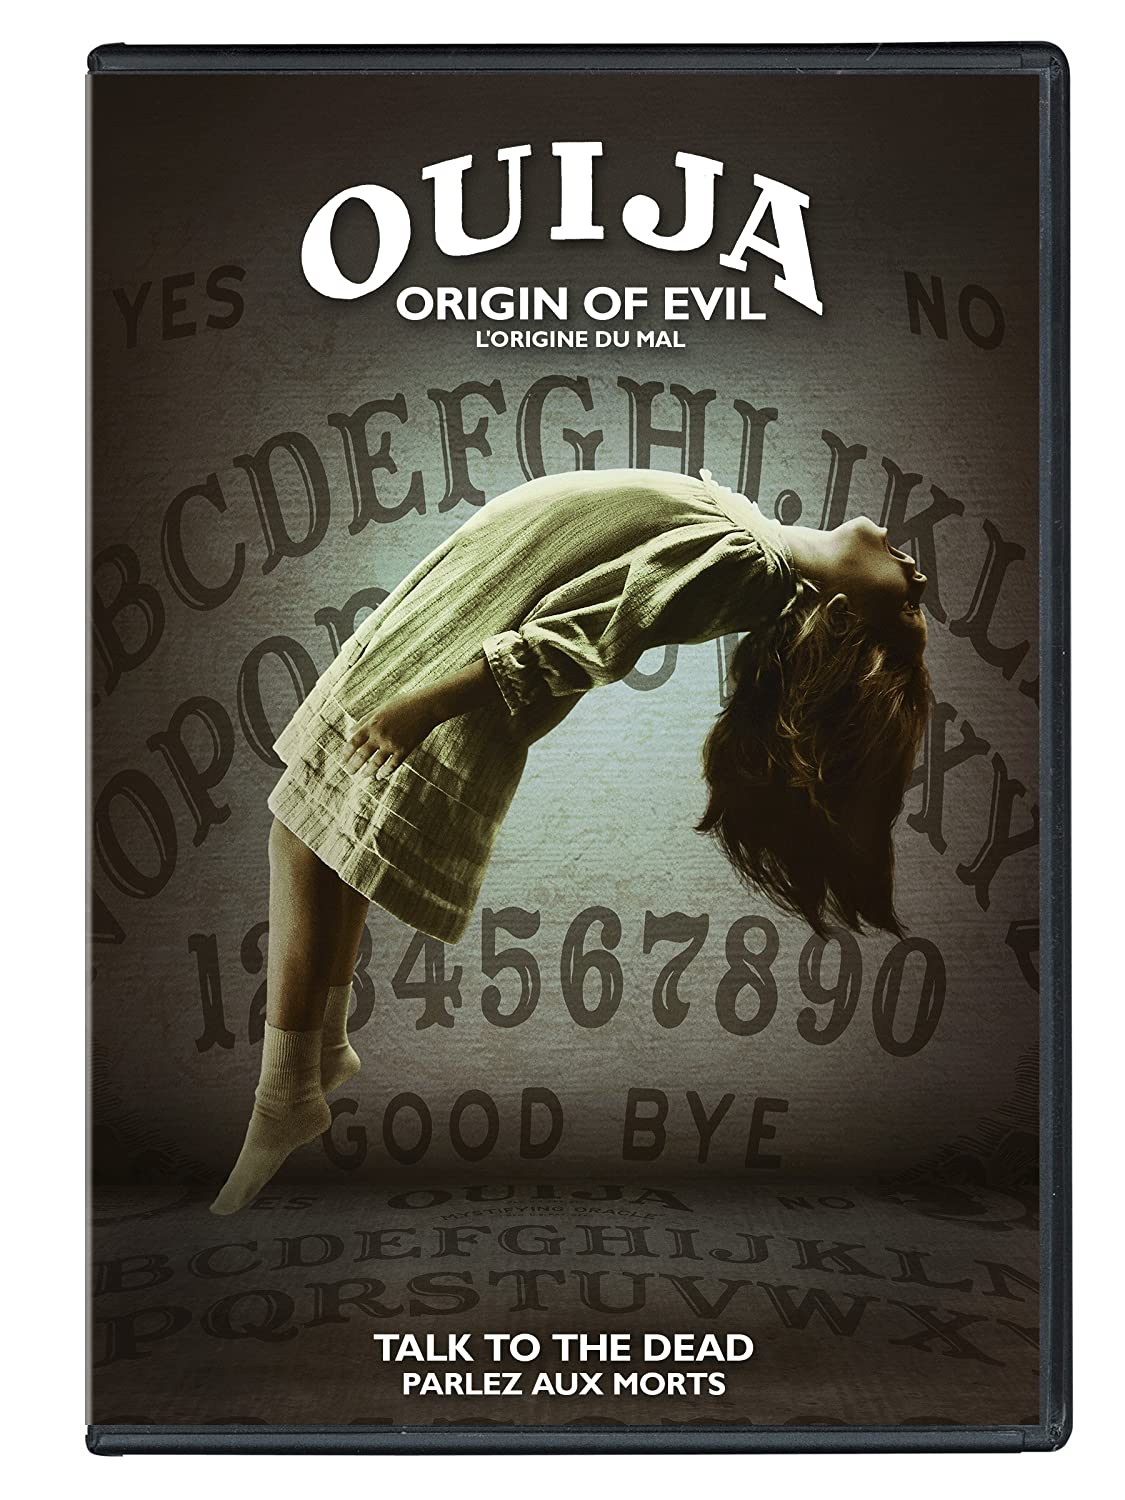 Dead Doris From Ouija